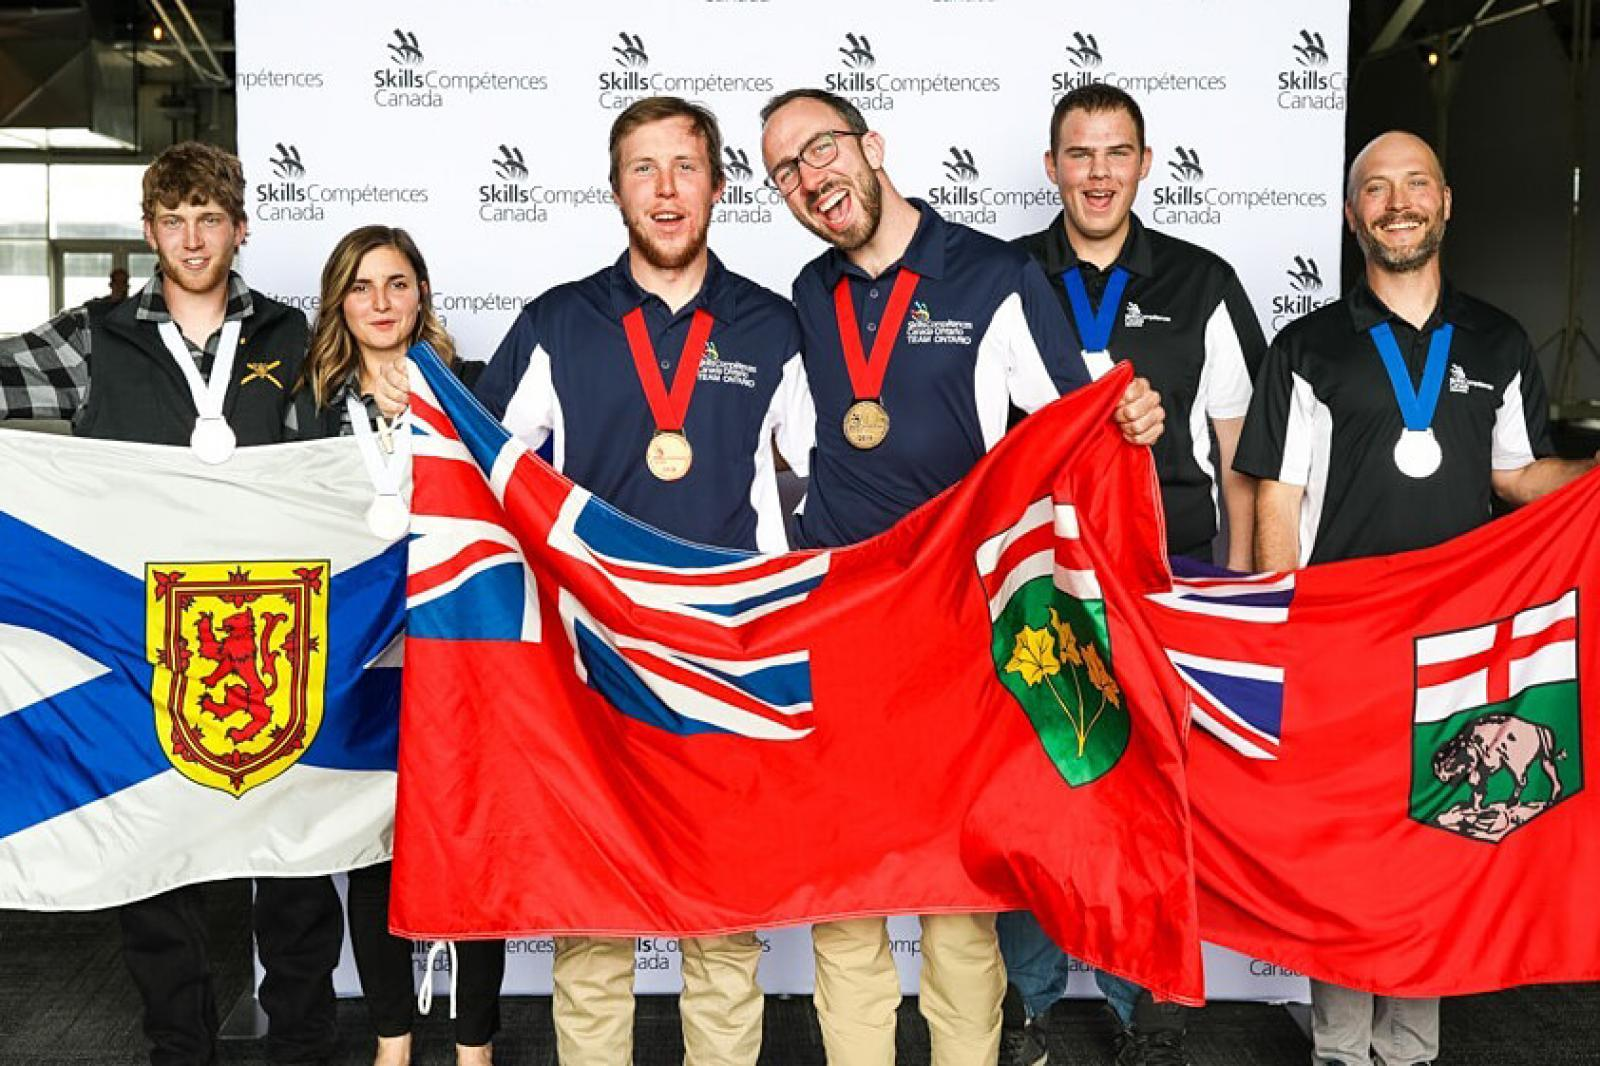 Ontario students win national gold